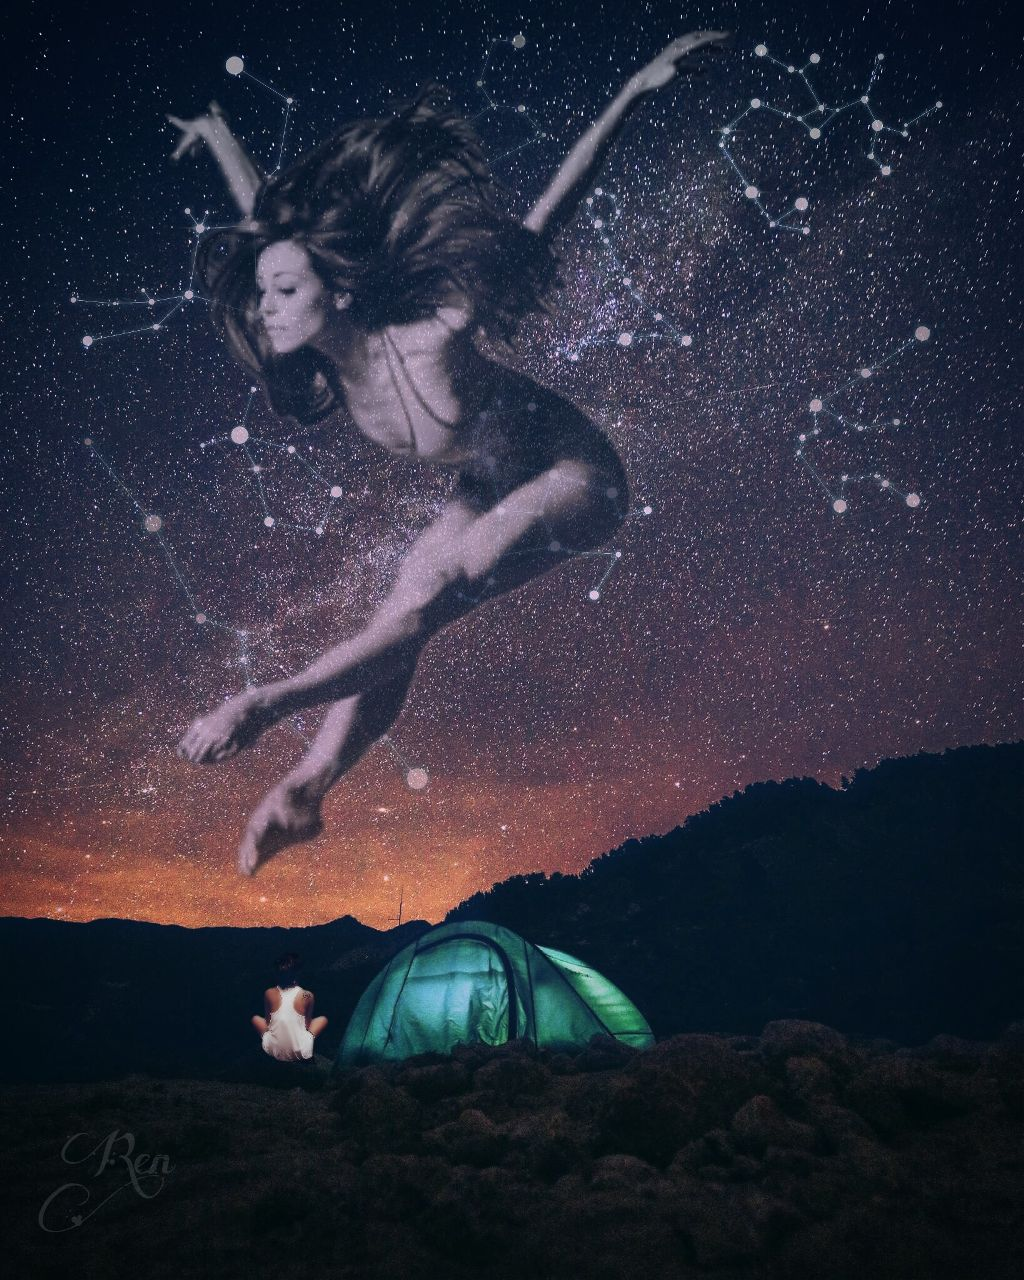 She's dancing with the stars 💙   #milkyway #constellations #starry #girl #camping #dancer #dancing #clipart @seyyahh